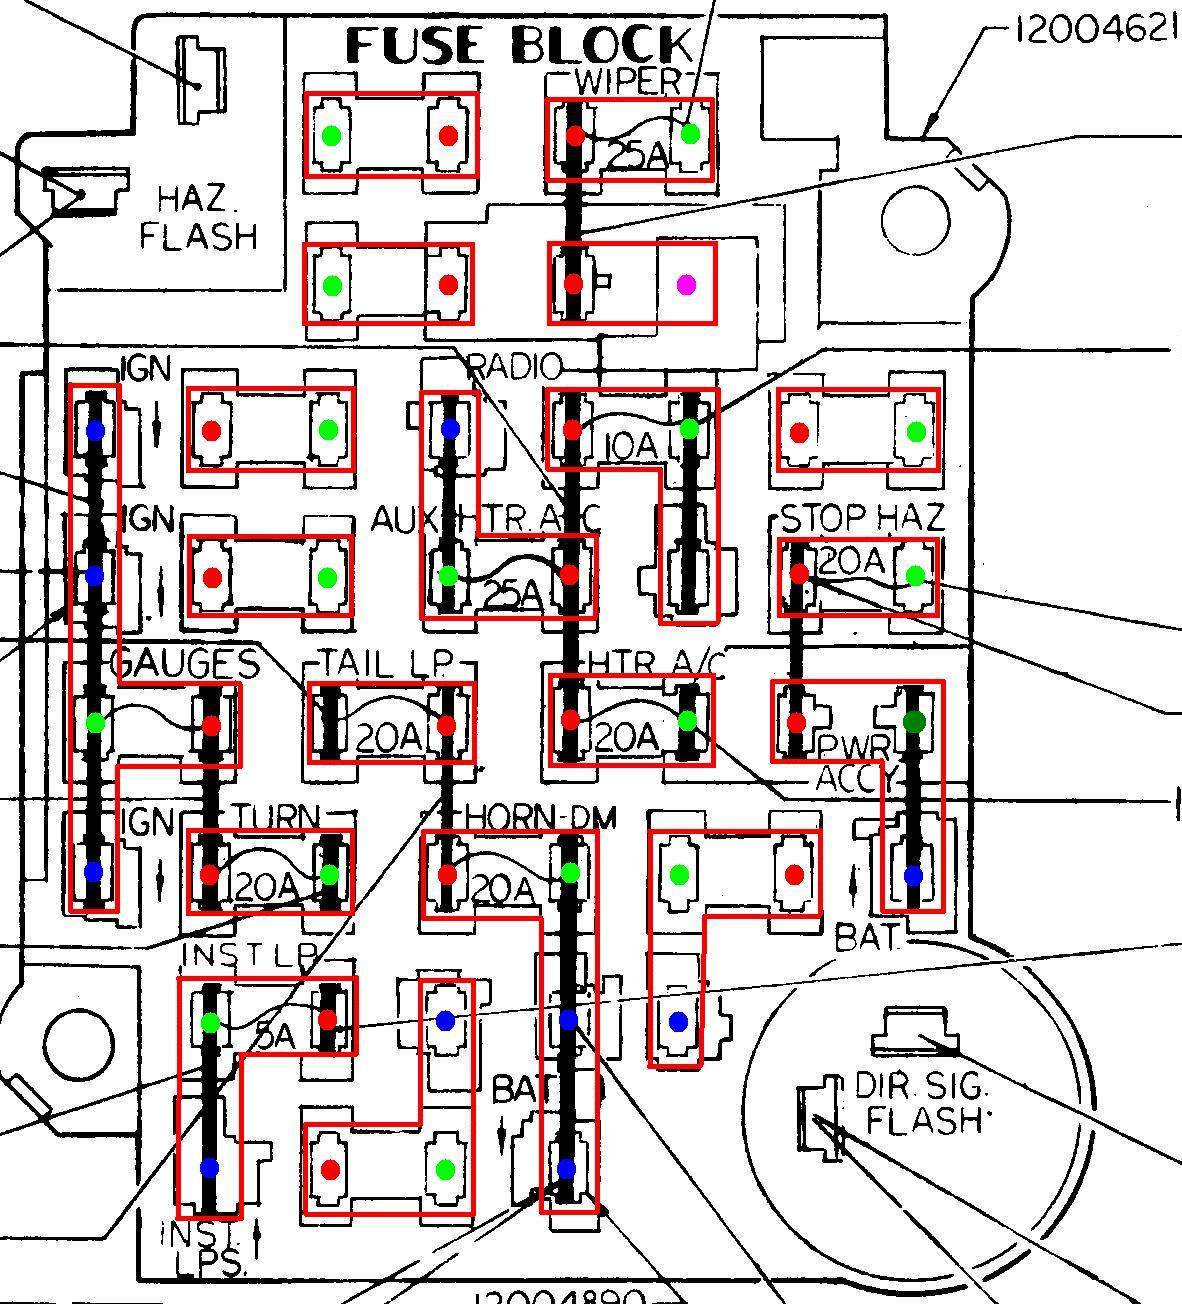 hight resolution of chevy fuse relay box experts of wiring diagram u2022 rh evilcloud co uk 1999 cadillac deville